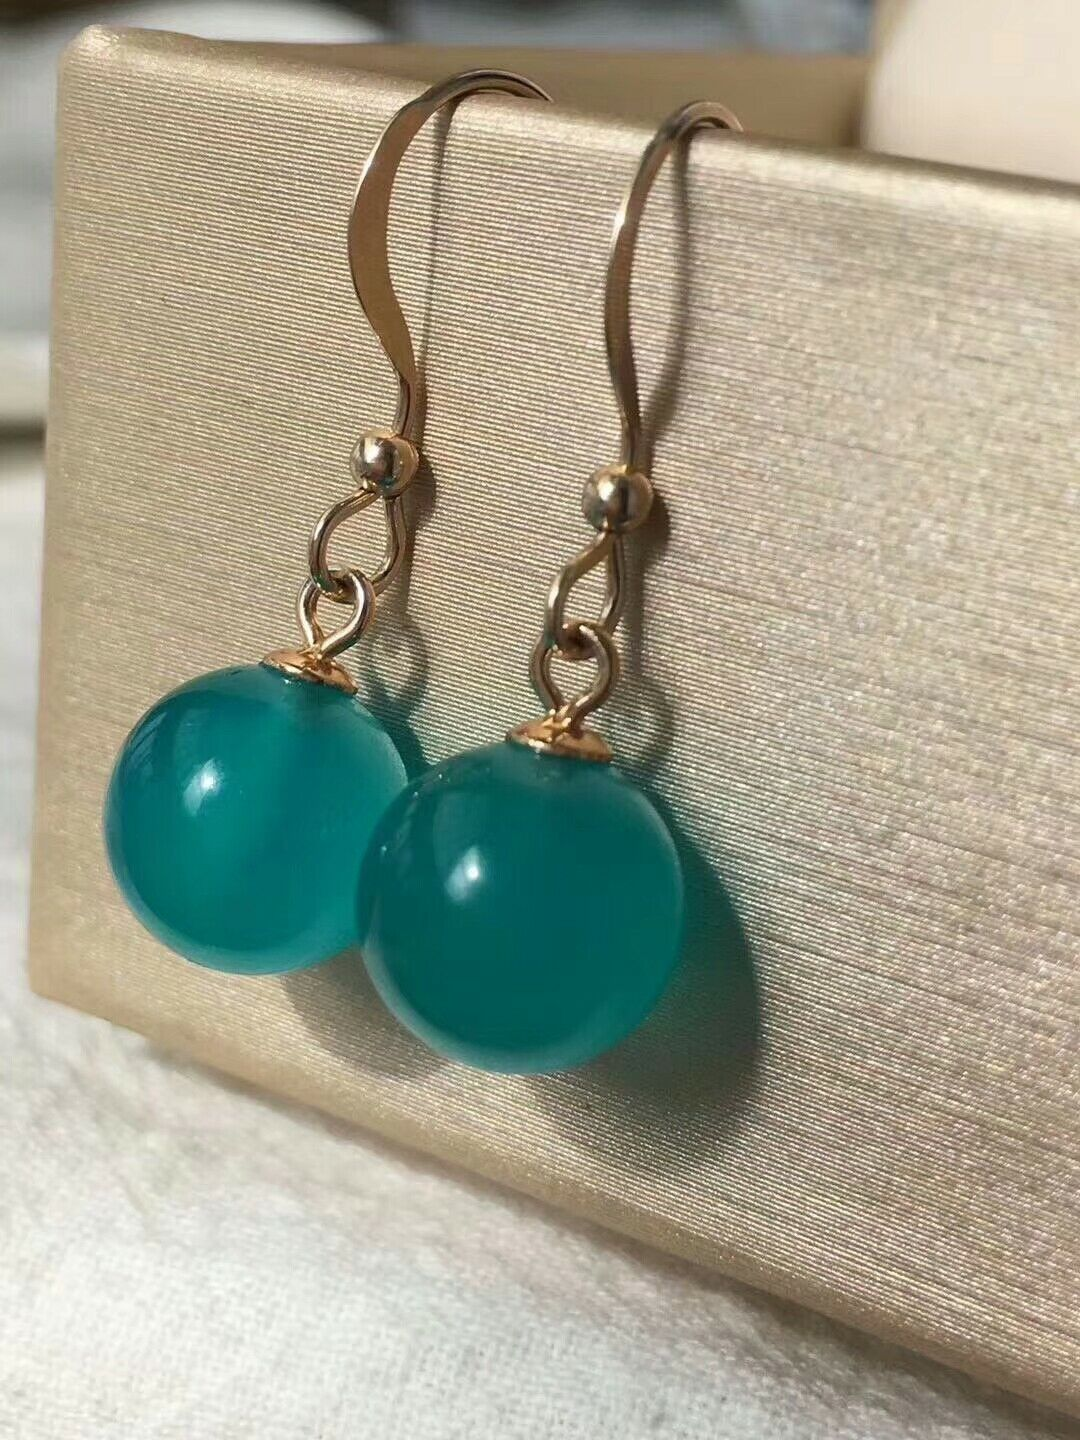 Natural Green Ice Amazonite Gems From Mozambique Earrings 9.5mm AAAA